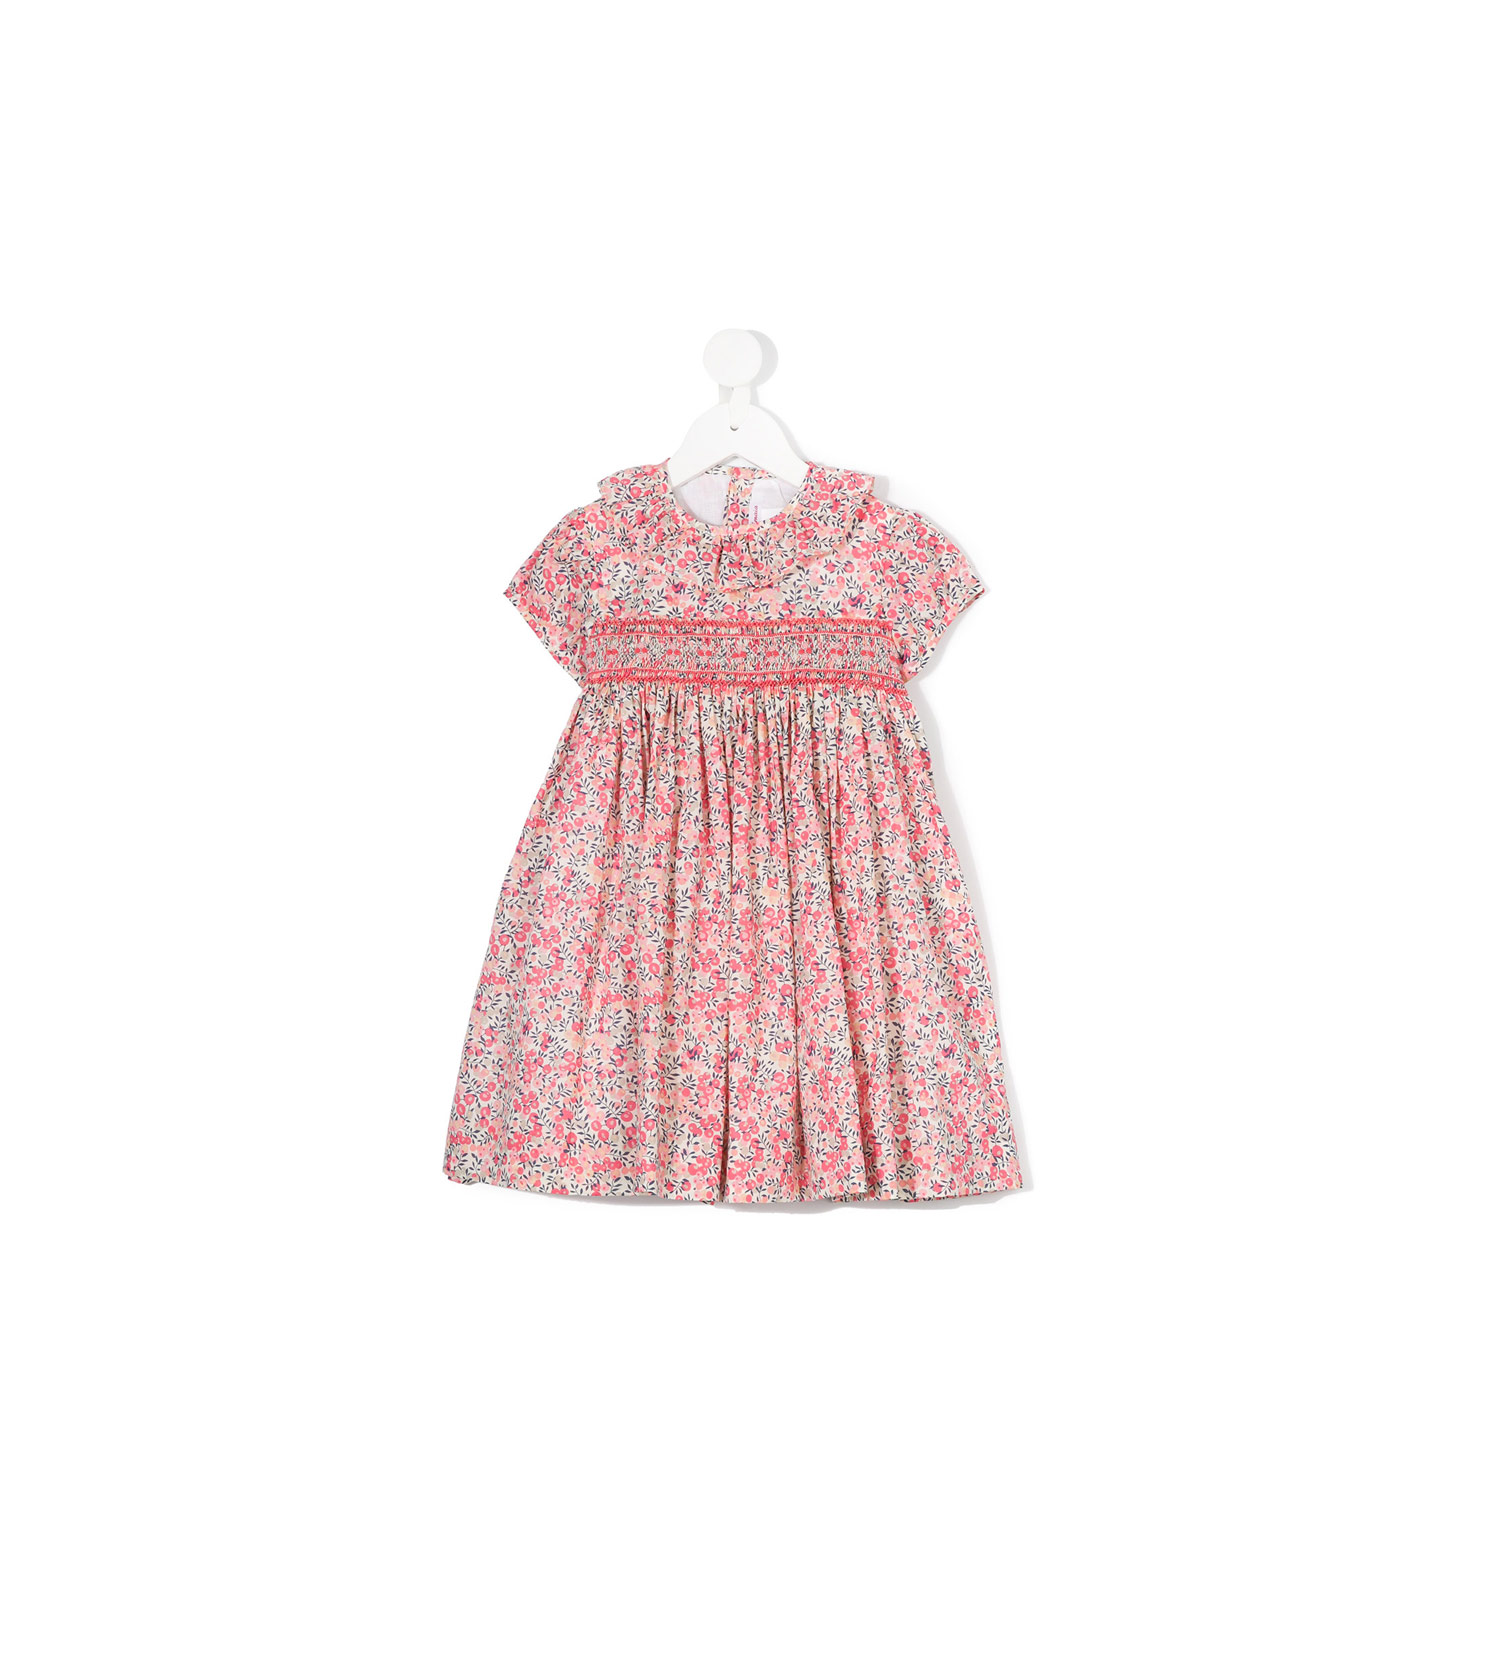 Moohren Liberty Dress